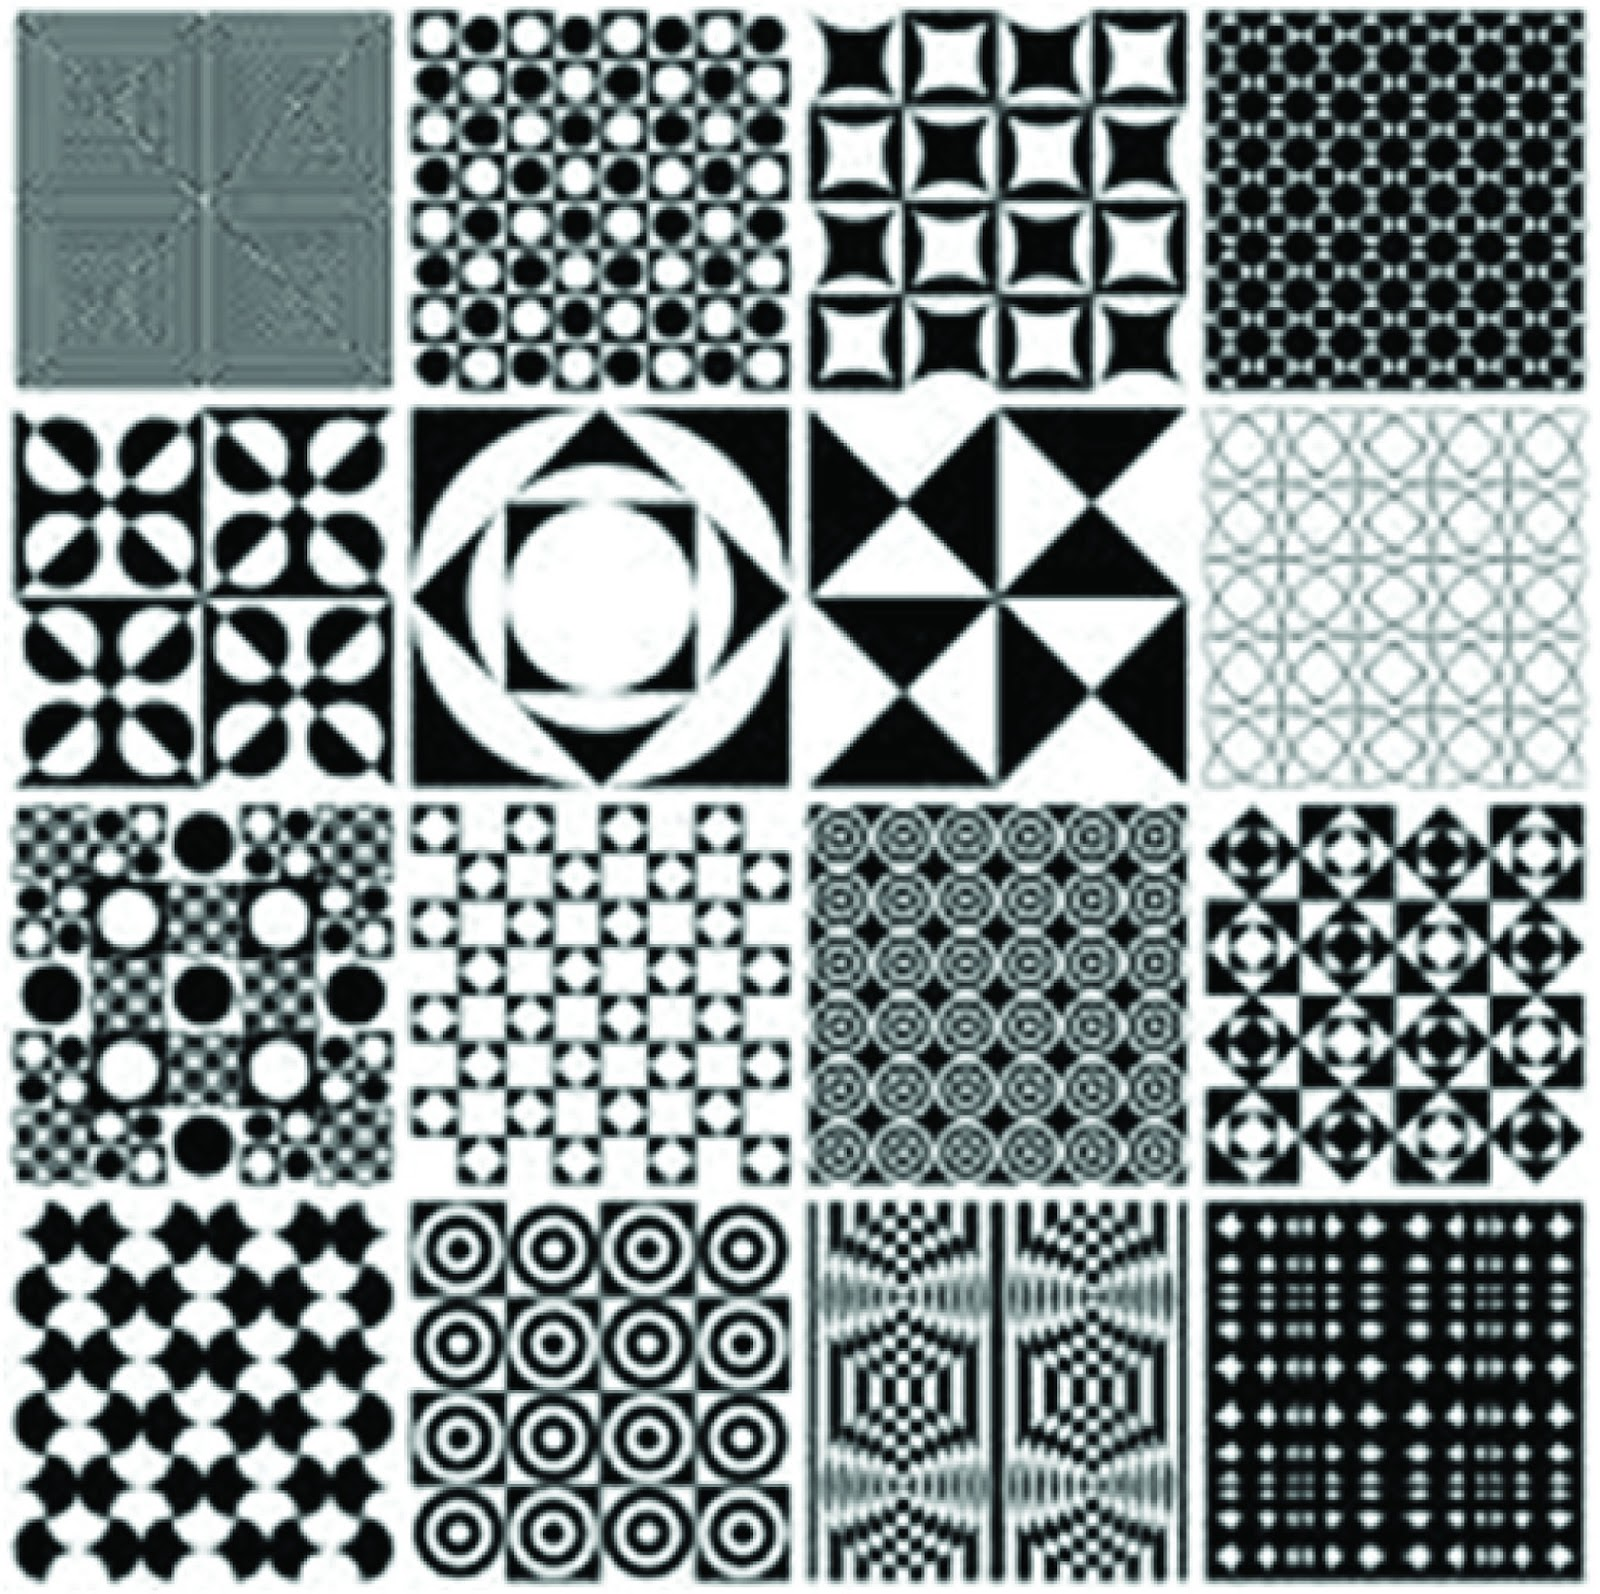 Textile Design Idea Different Type Of Textile Design Patterns